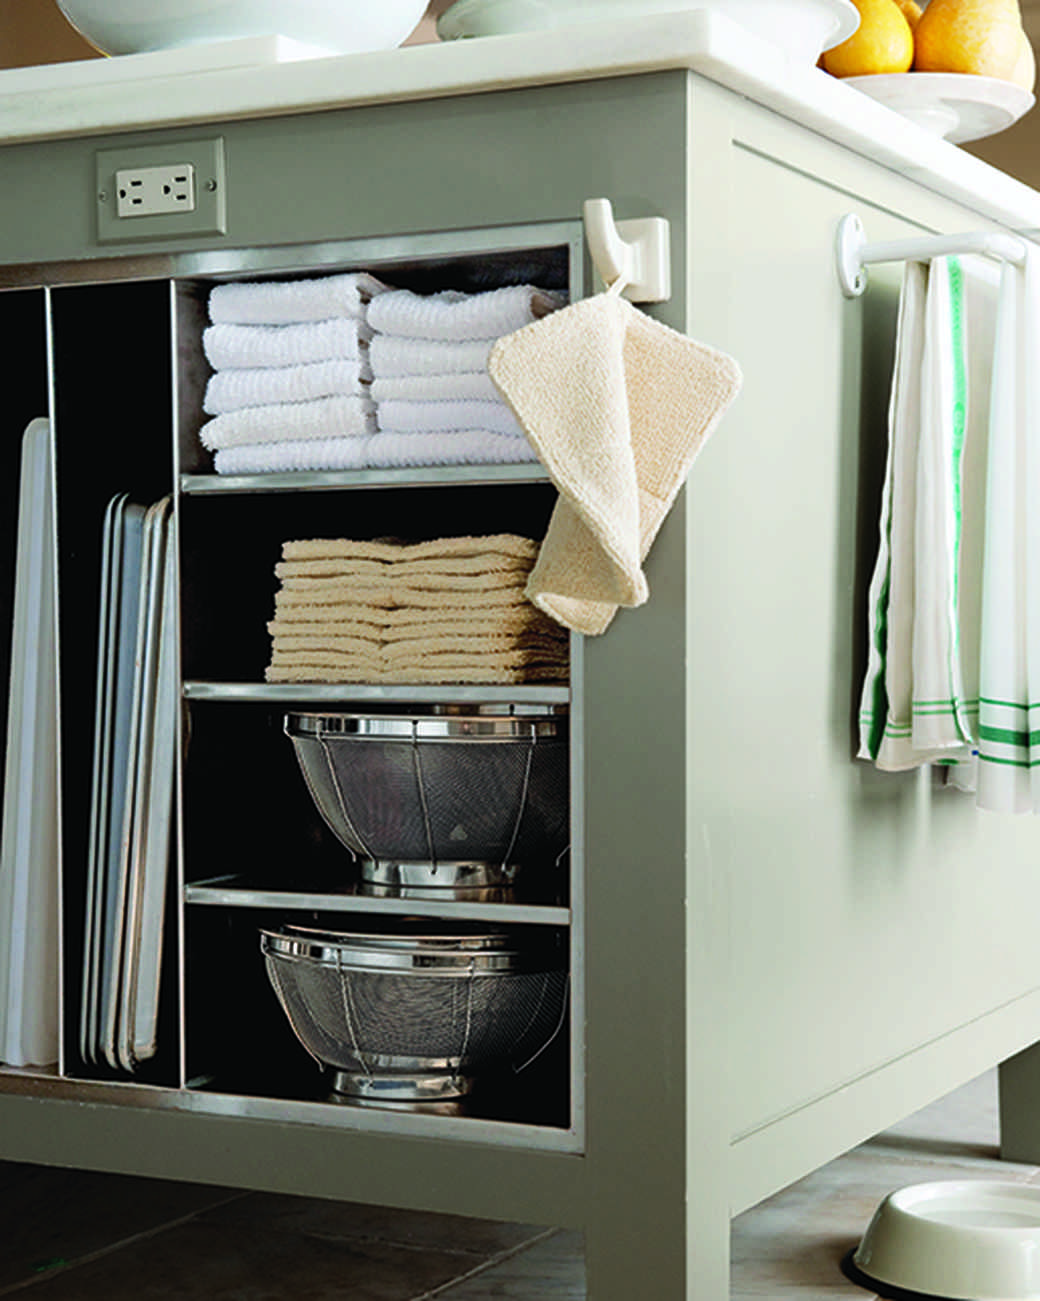 md106031_0910_island_shelving_detail_towel.jpg